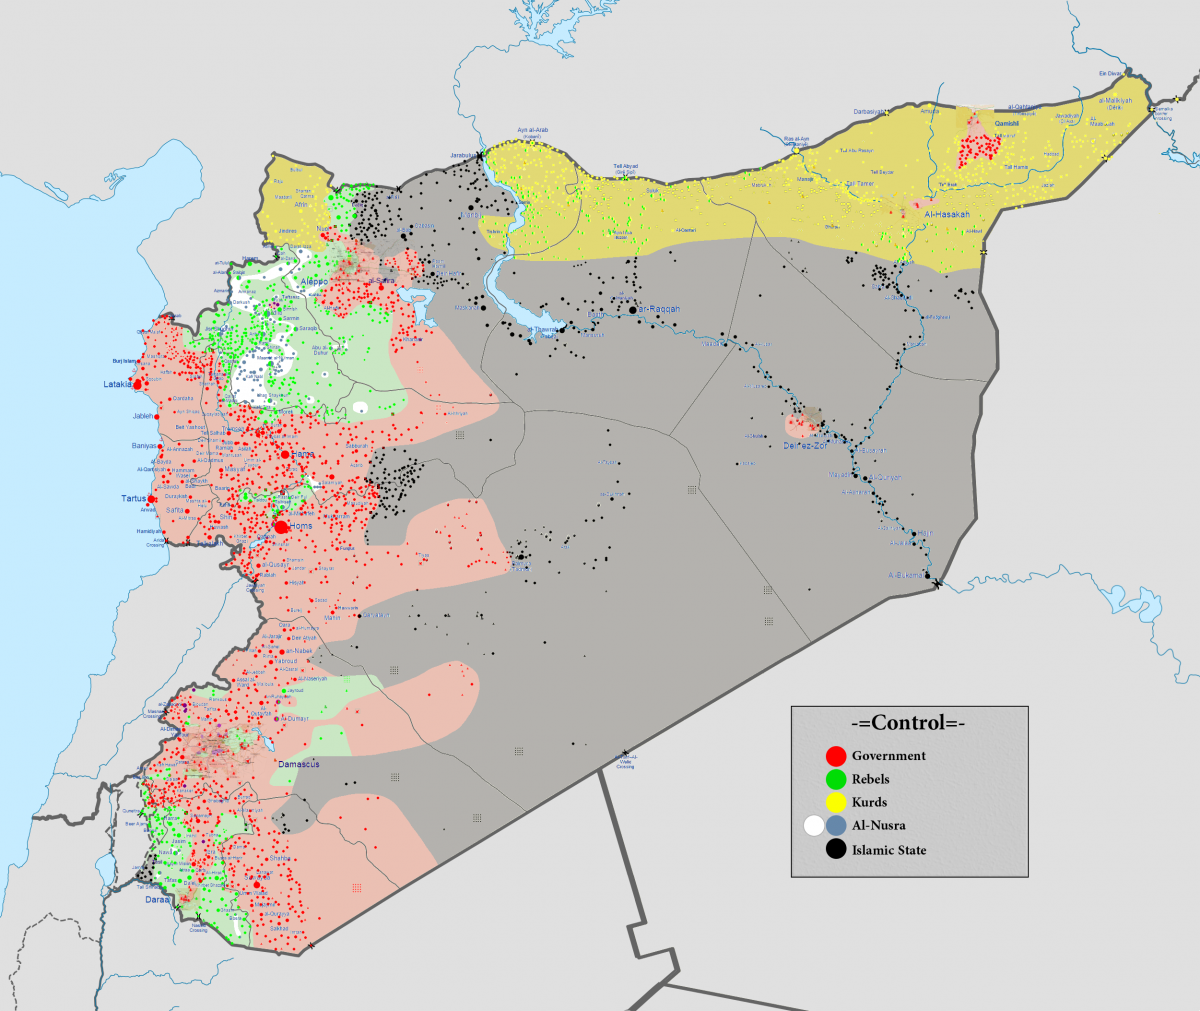 Syria Civil War map 8 February 2016